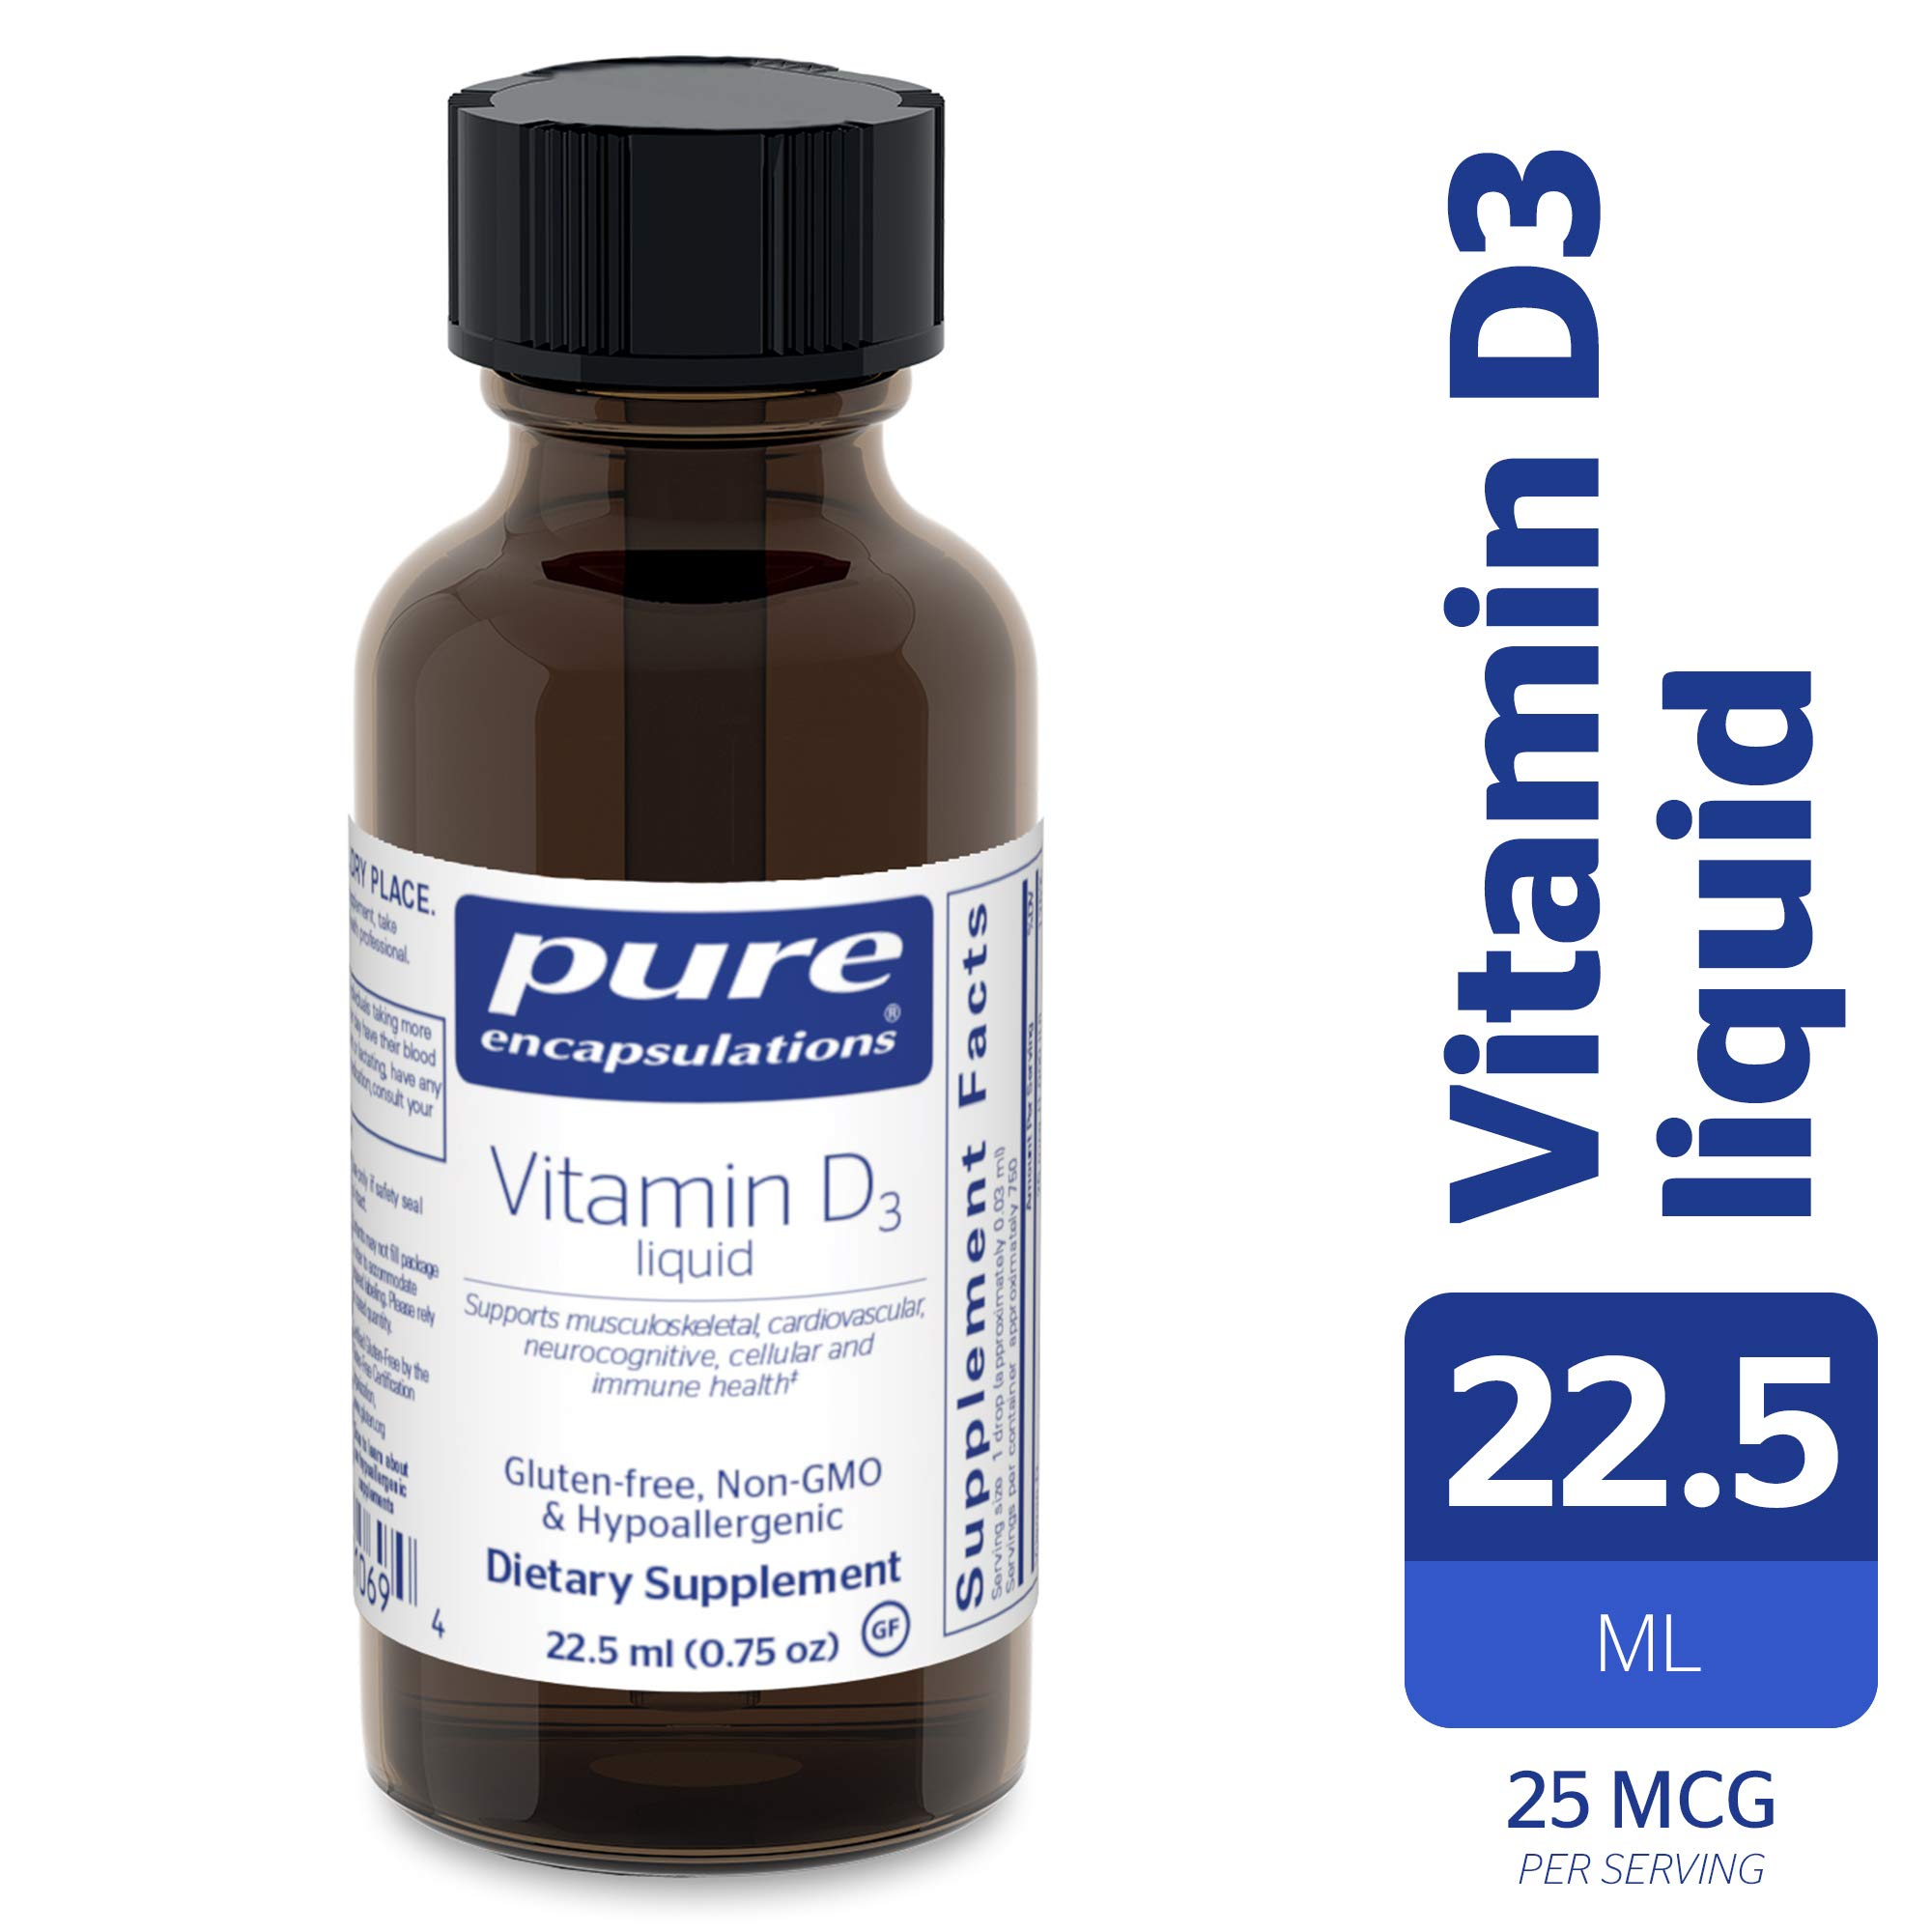 Pure Encapsulations - Vitamin D3 Liquid - Hypoallergenic Support for Bone, Breast, Prostate, Cardiovascular, Colon and Immune Health* - 22.5 ml (0.75 fl oz) by Pure Encapsulations